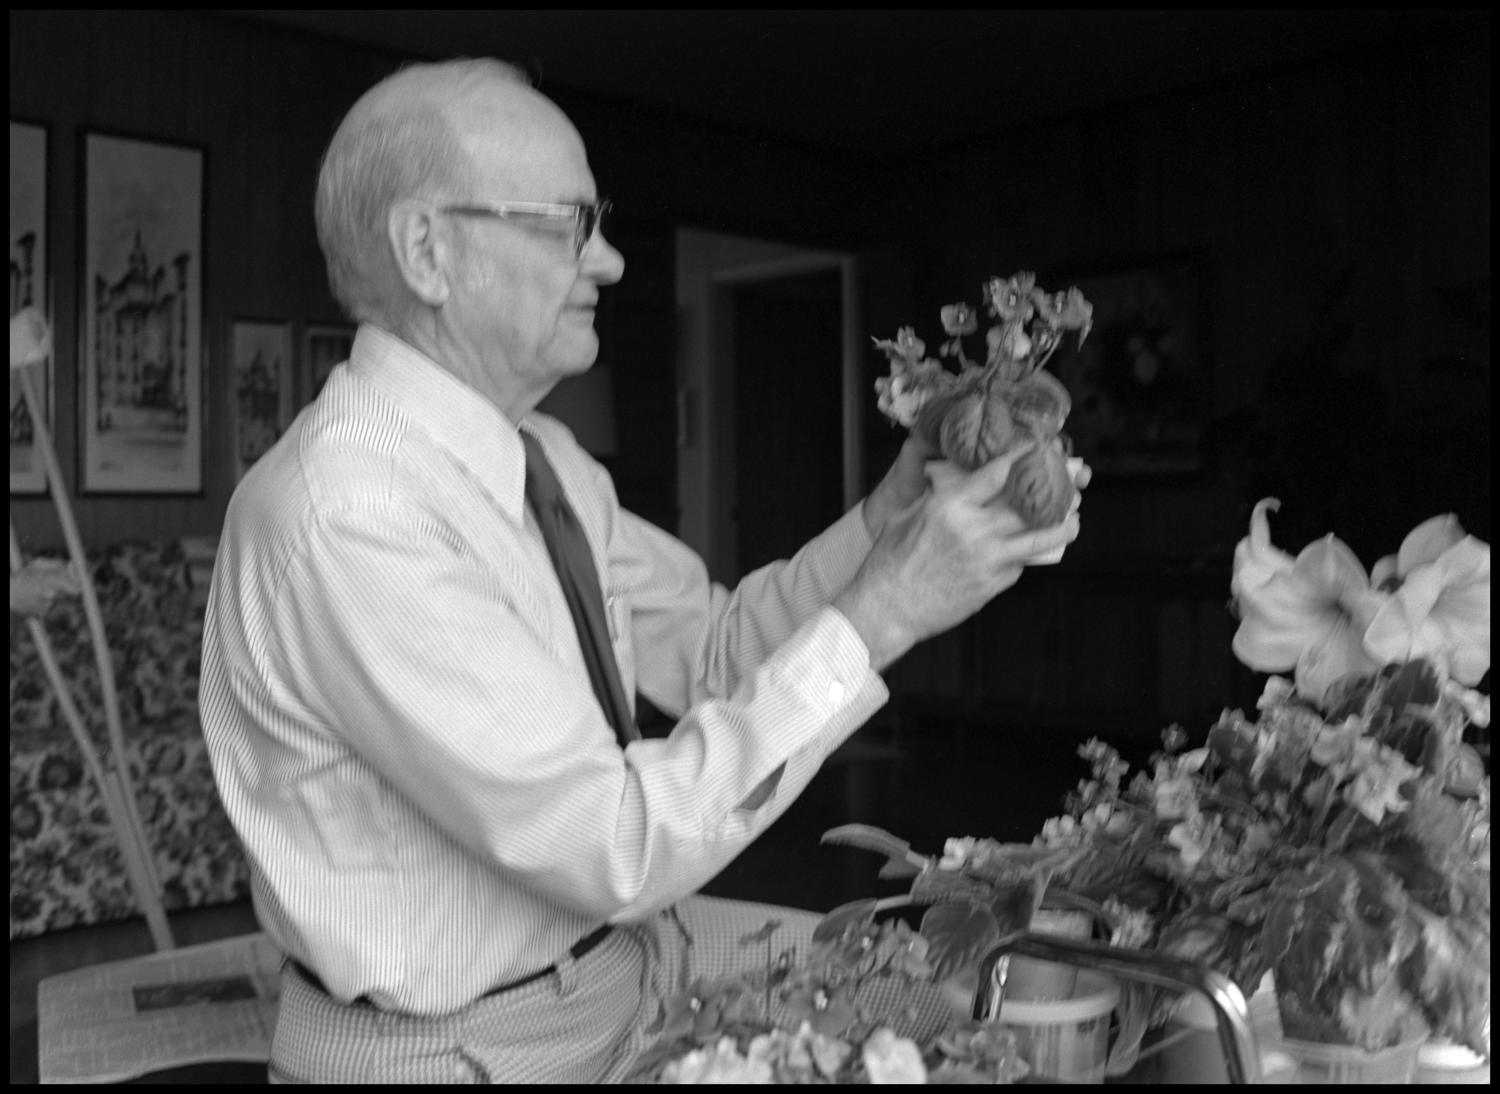 [Garland Brookshear holding pansies], Photograph of Garland Brookshear, a member of the Management faculty at NTSU, holding a potted plant that appears to be pansies. He is being photographed for his retirement.,